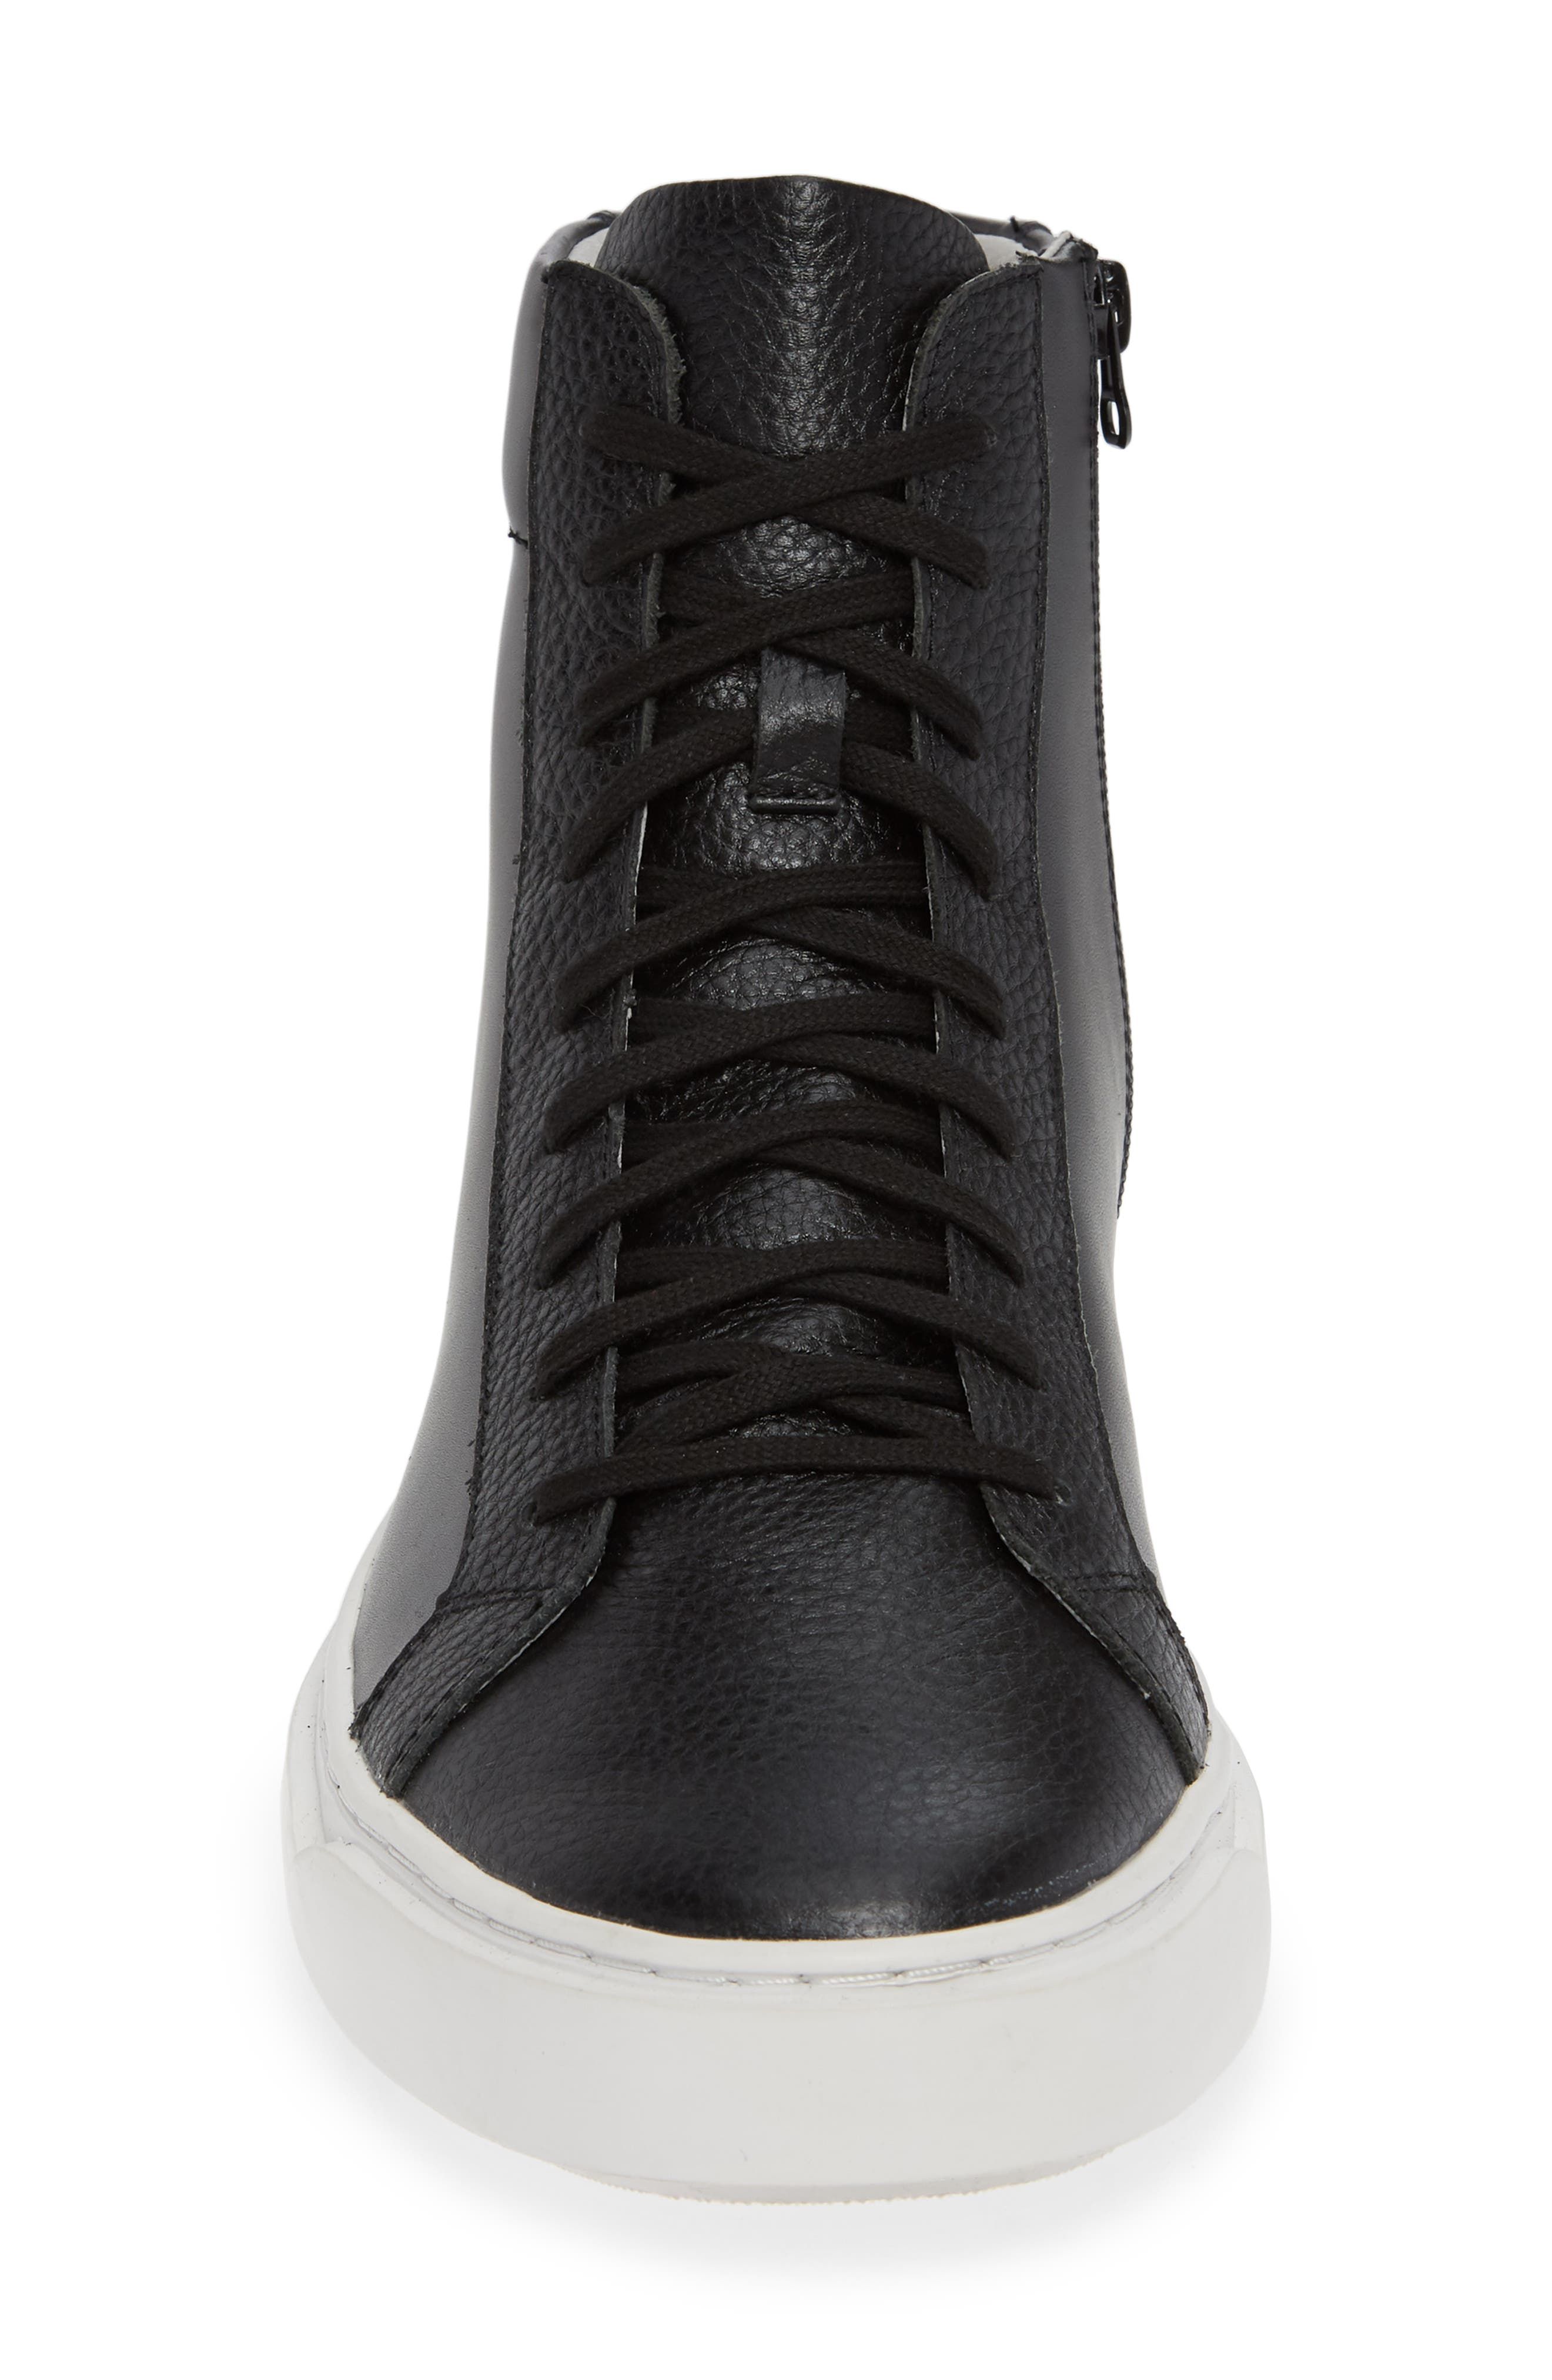 Logan High Top Sneaker,                             Alternate thumbnail 4, color,                             HIGHLAND LEATHER